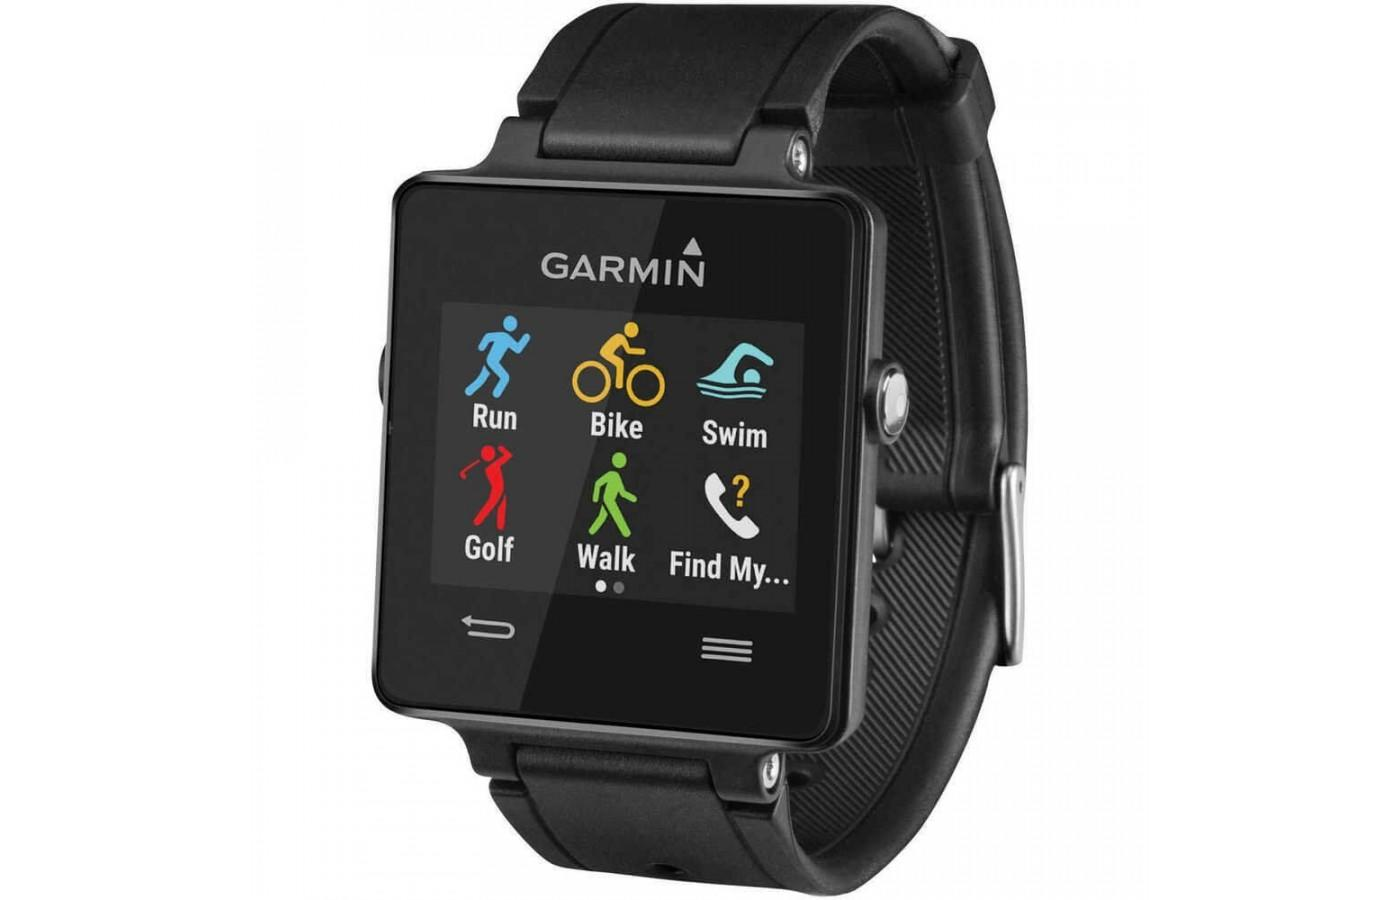 Angled view of black Garmin Vivoactive